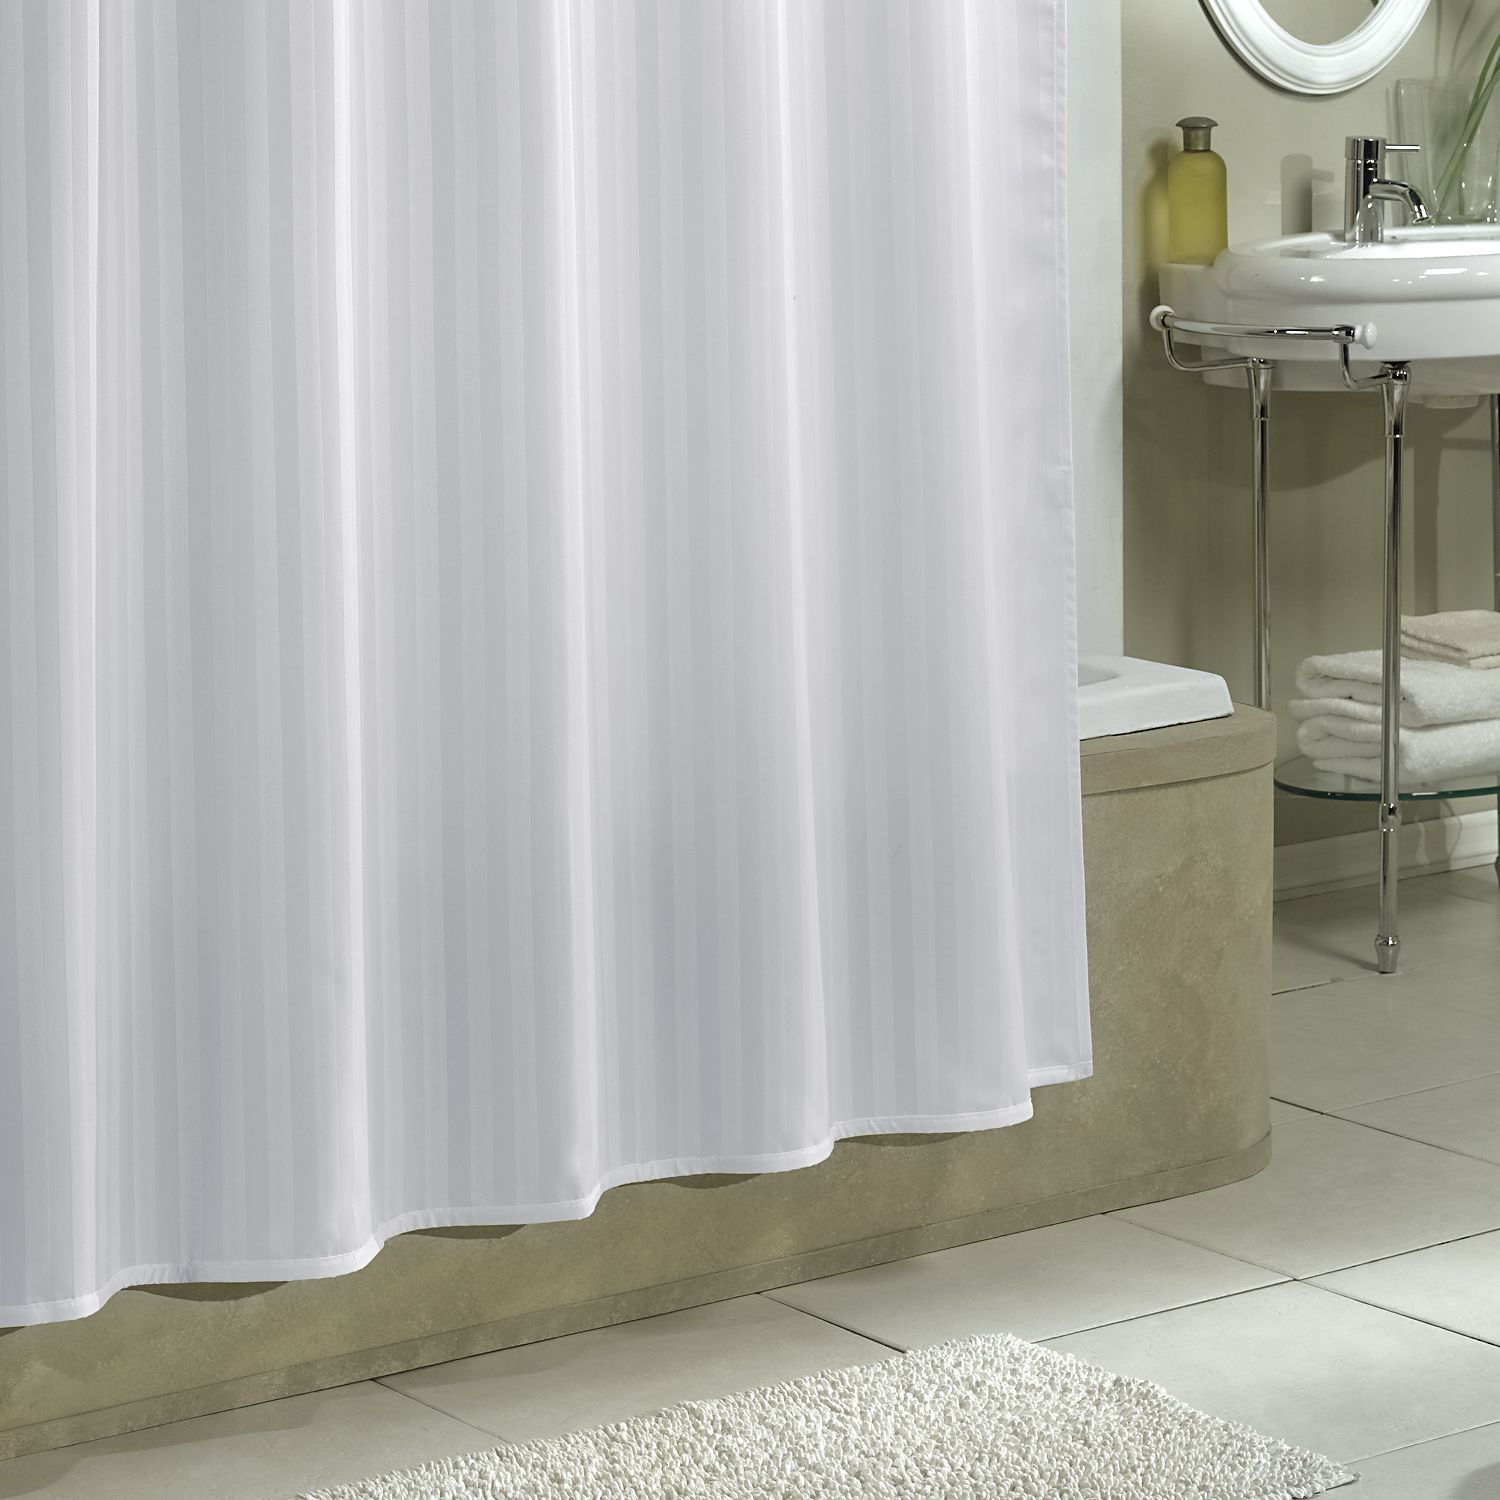 Bed Bath and Beyond Shower Curtain Liner | Anti Mold Shower Curtain Liner | Shower Curtain Liner